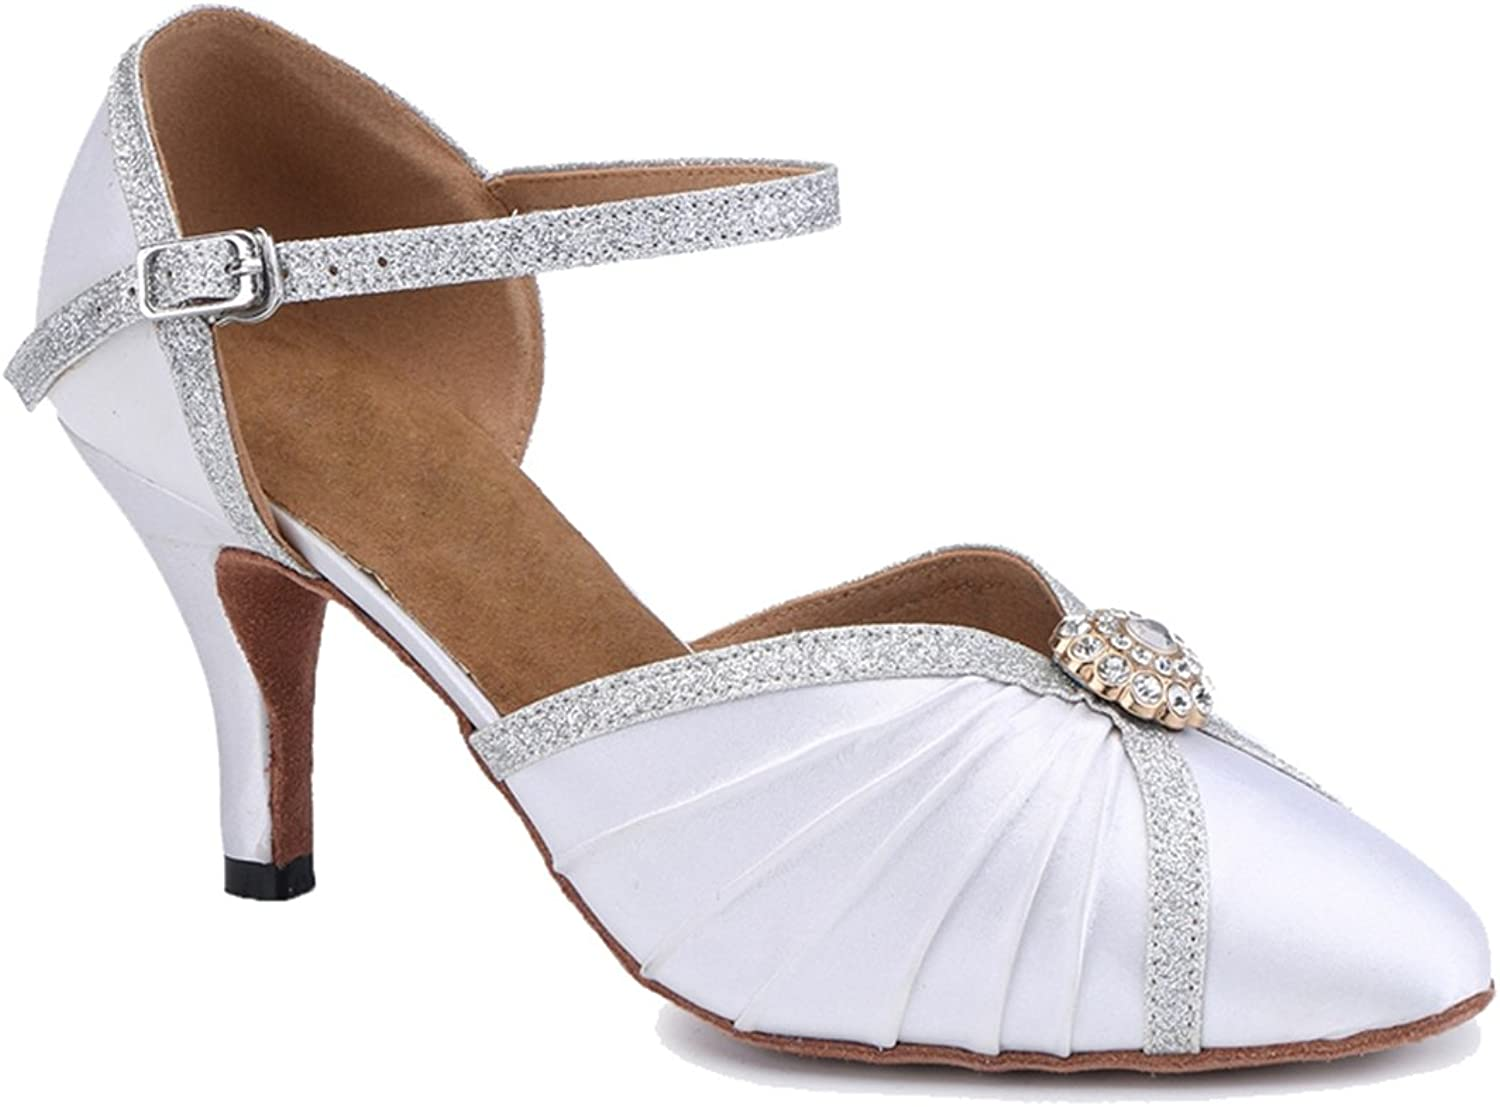 TDA Women's Comfort Single Strap Ruched Rhinestone Satin Ballroom Latin Modern Dance Wedding shoes